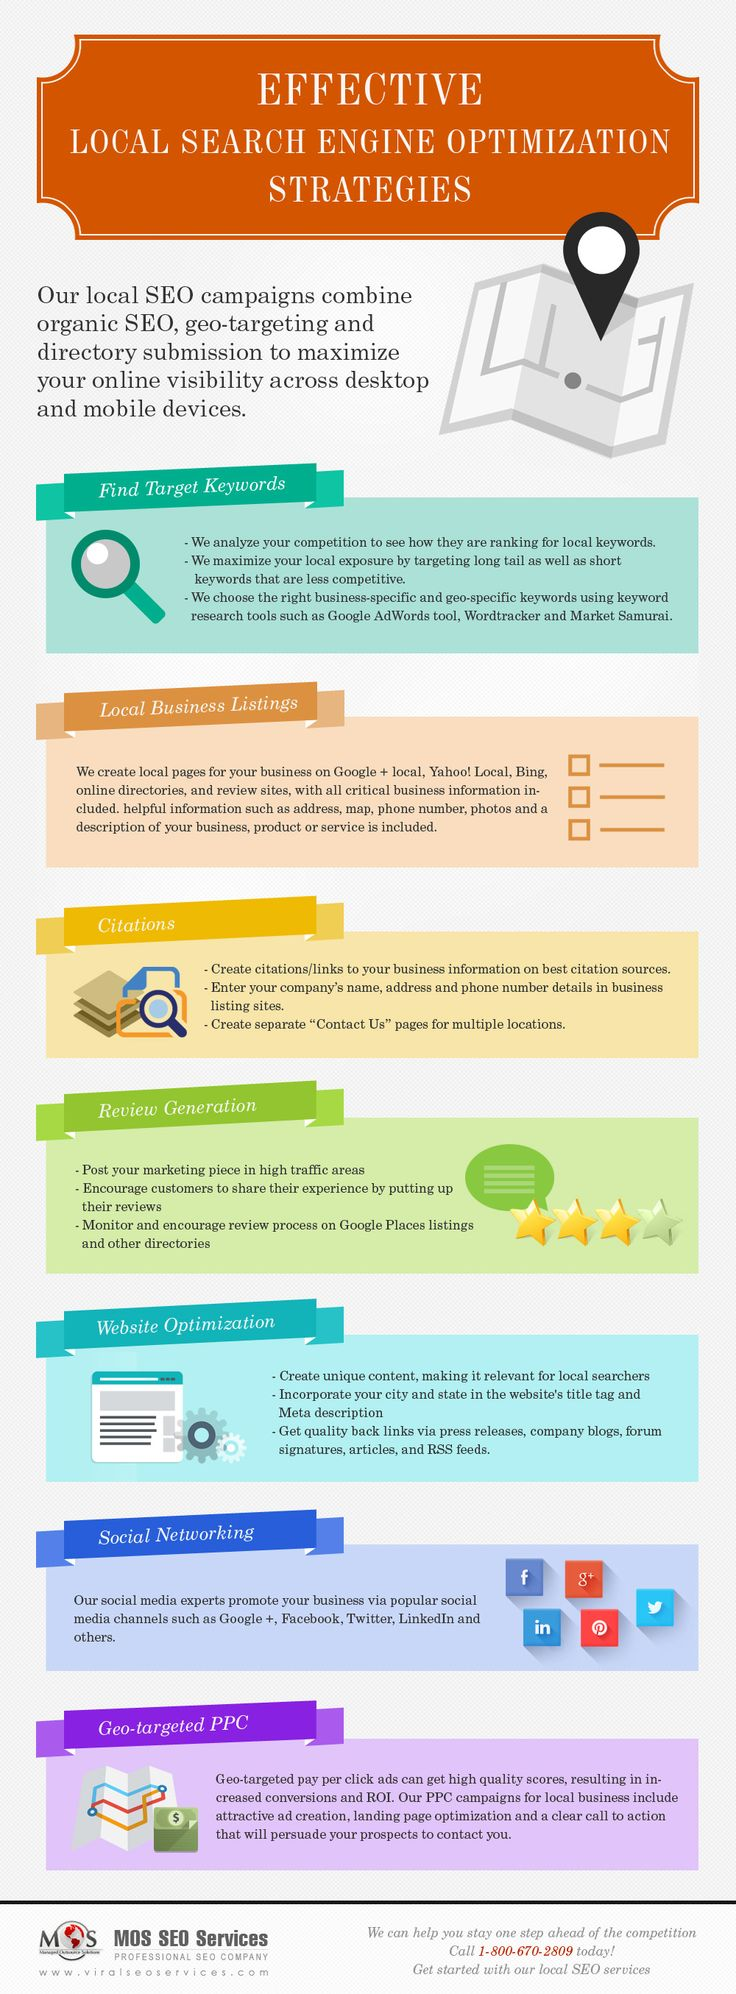 Local SEO [Infographic]- Get started with our #localSEOservices. Effective local search engine optimization from our #localSEO company, MOS SEO Services; Call 1-800-670-2809 today! #infographics